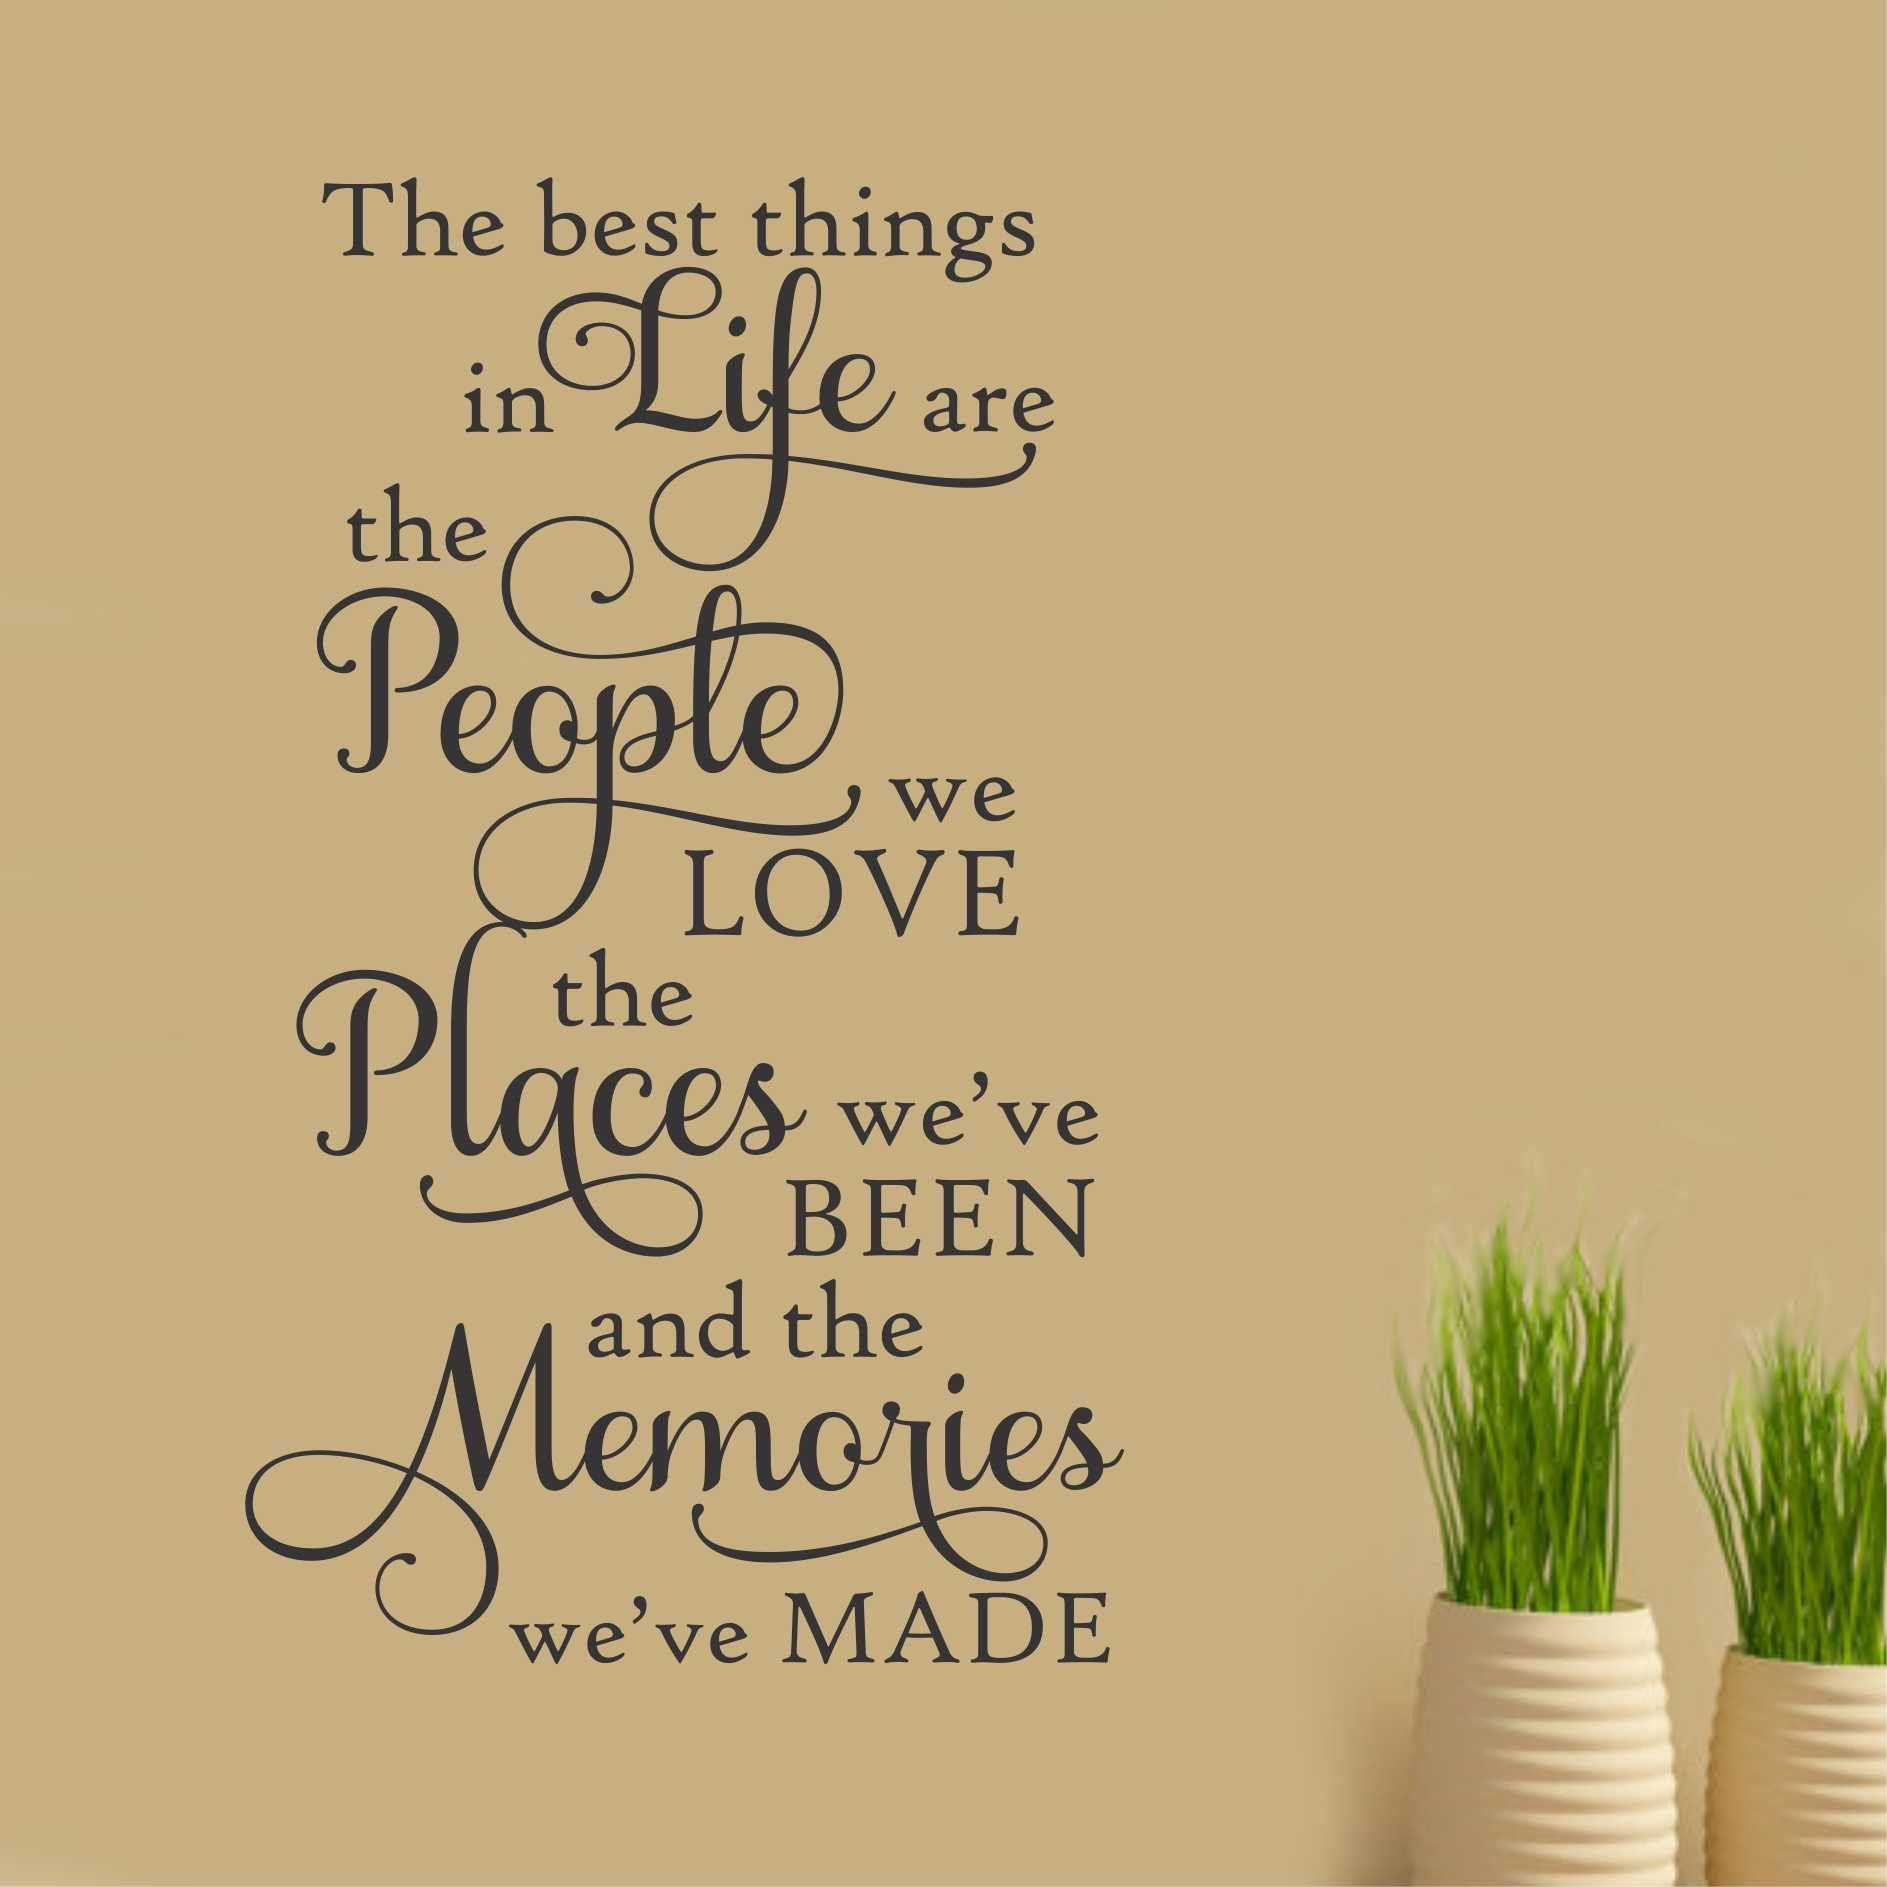 Best Things People Places Memories | Vinyl Quotes | Wall Decal ...